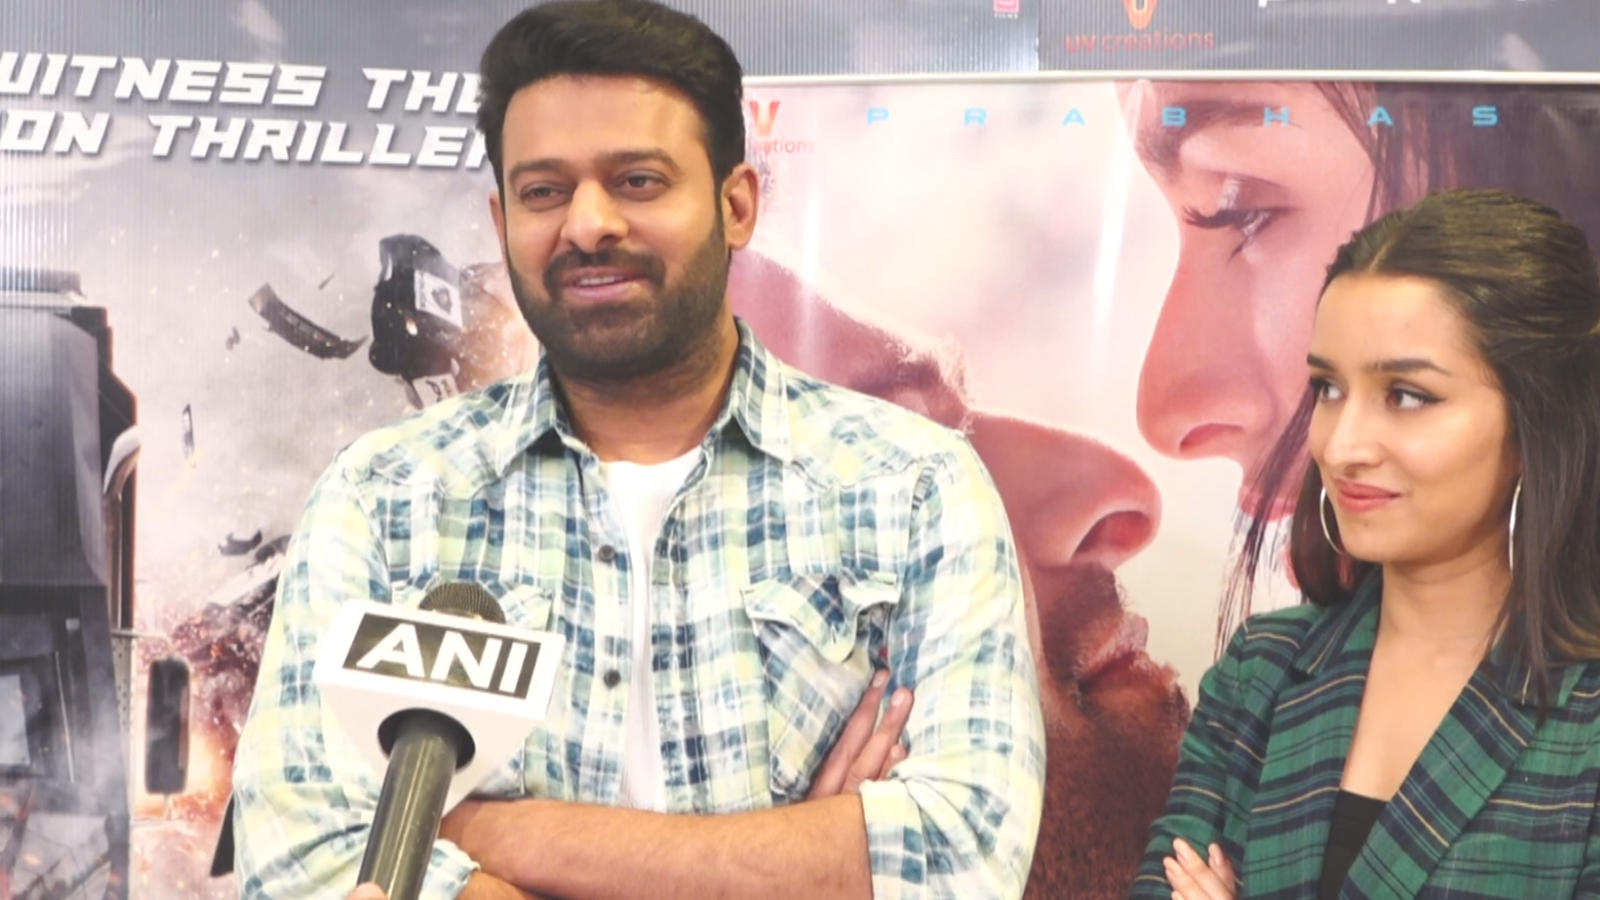 Sahoo: We tried to give different kind of action film for Indian film industry, says Prabhas